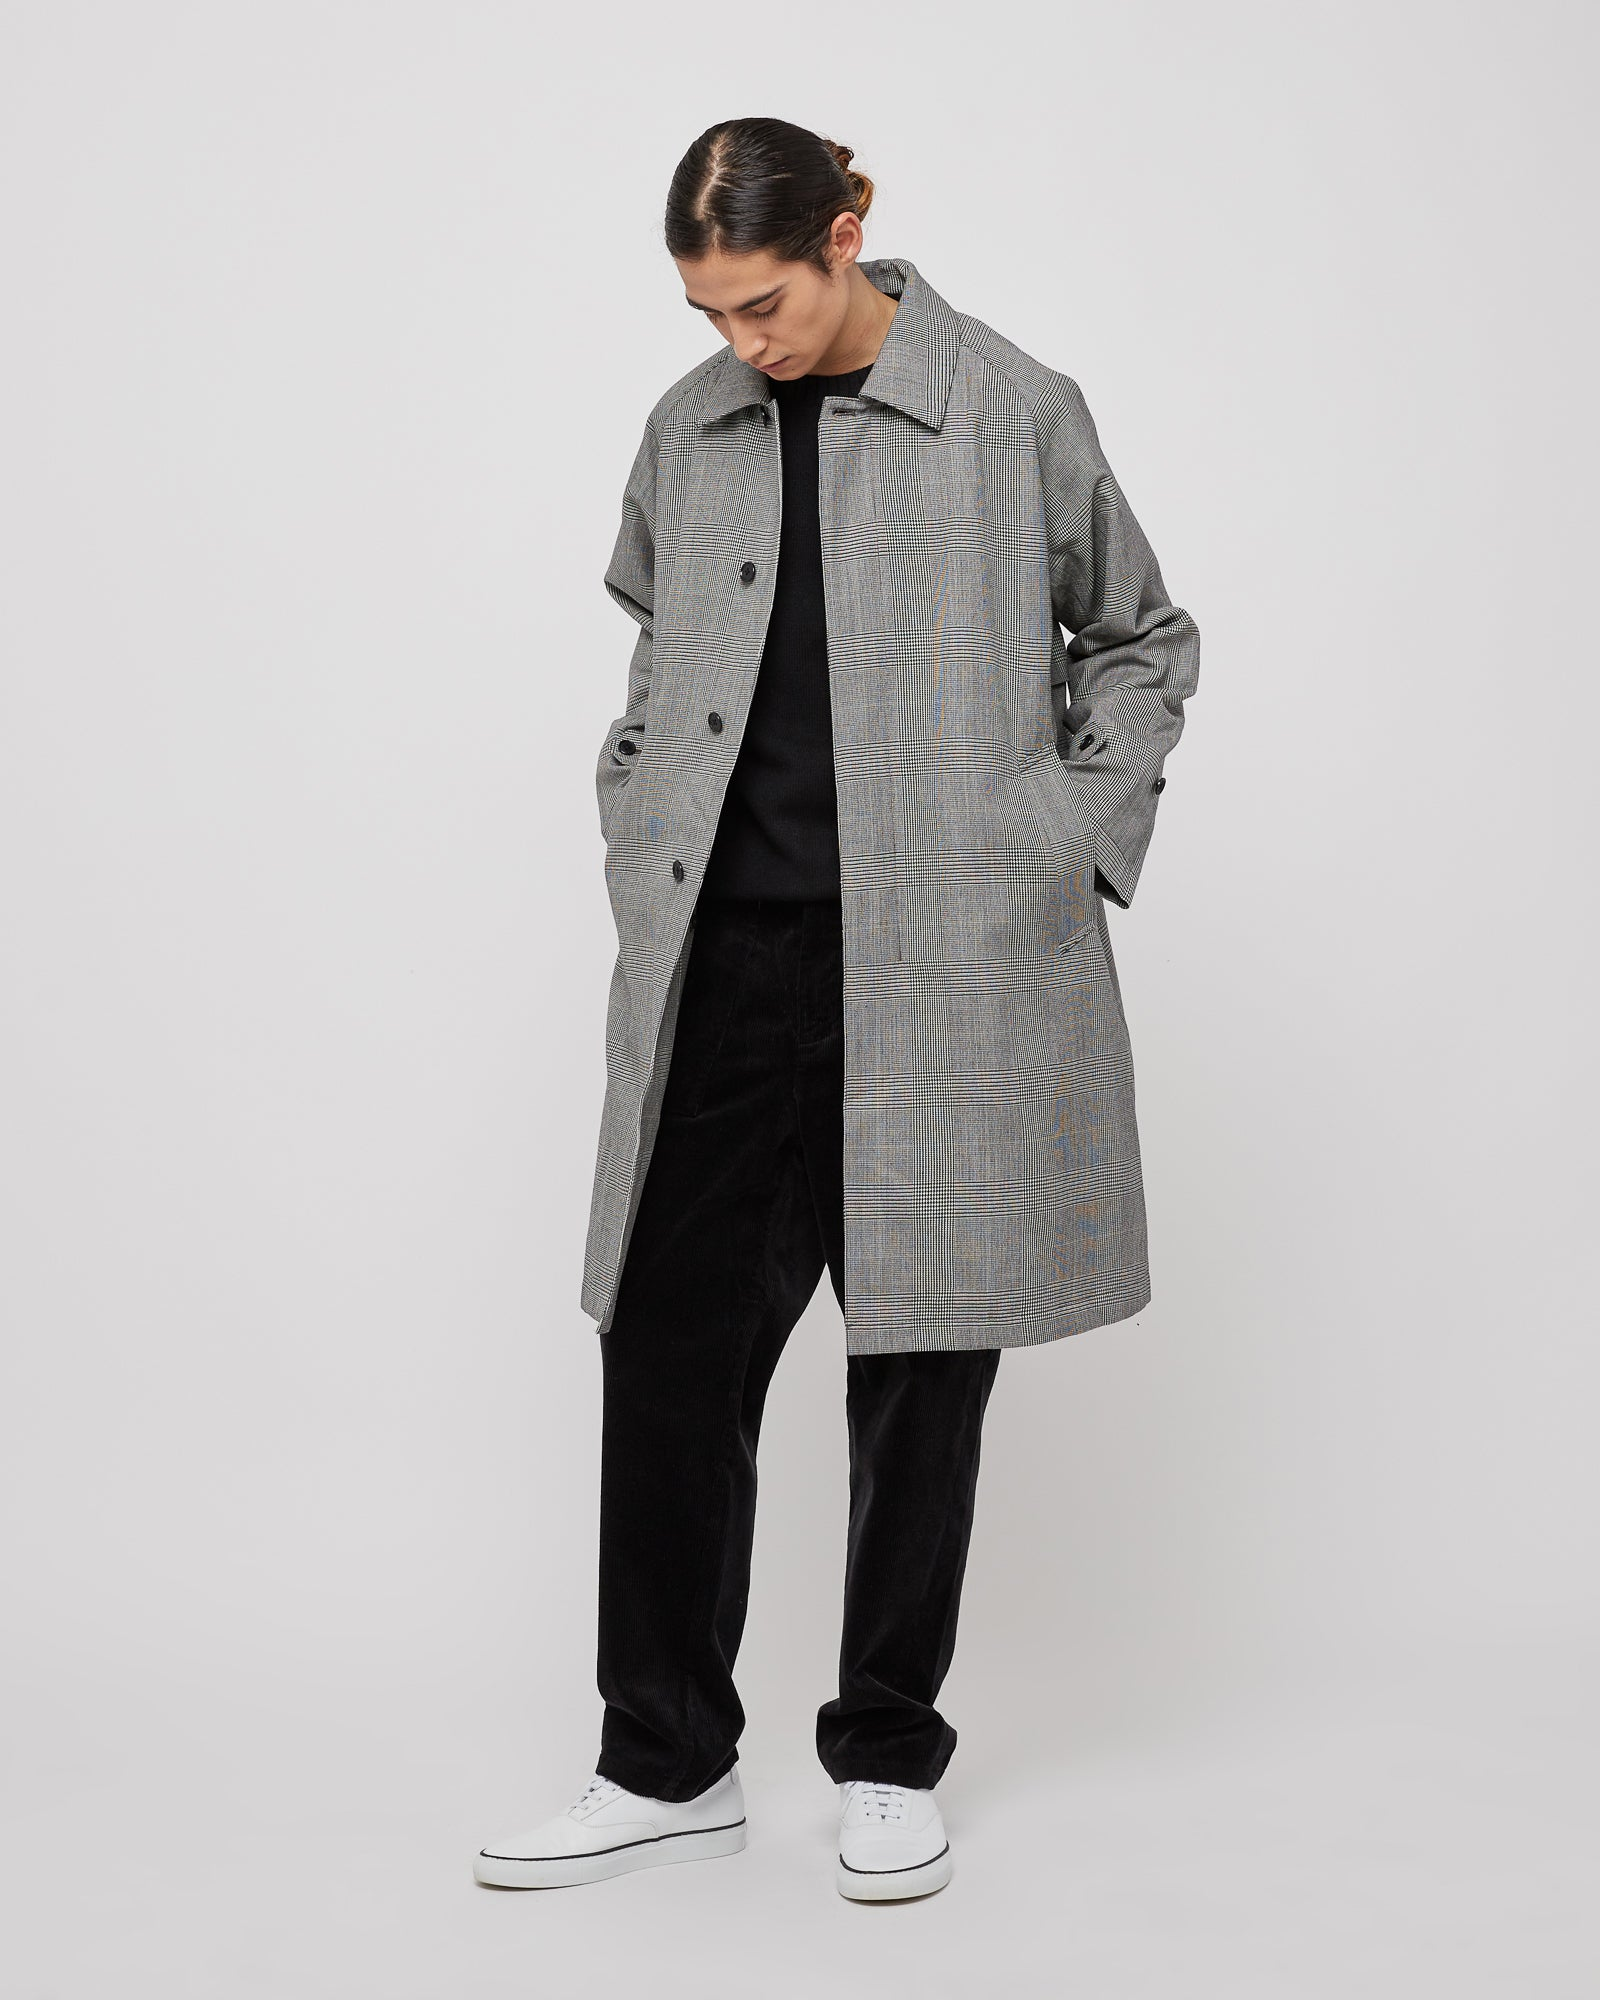 Original Bal Collar Coat in Gray Check